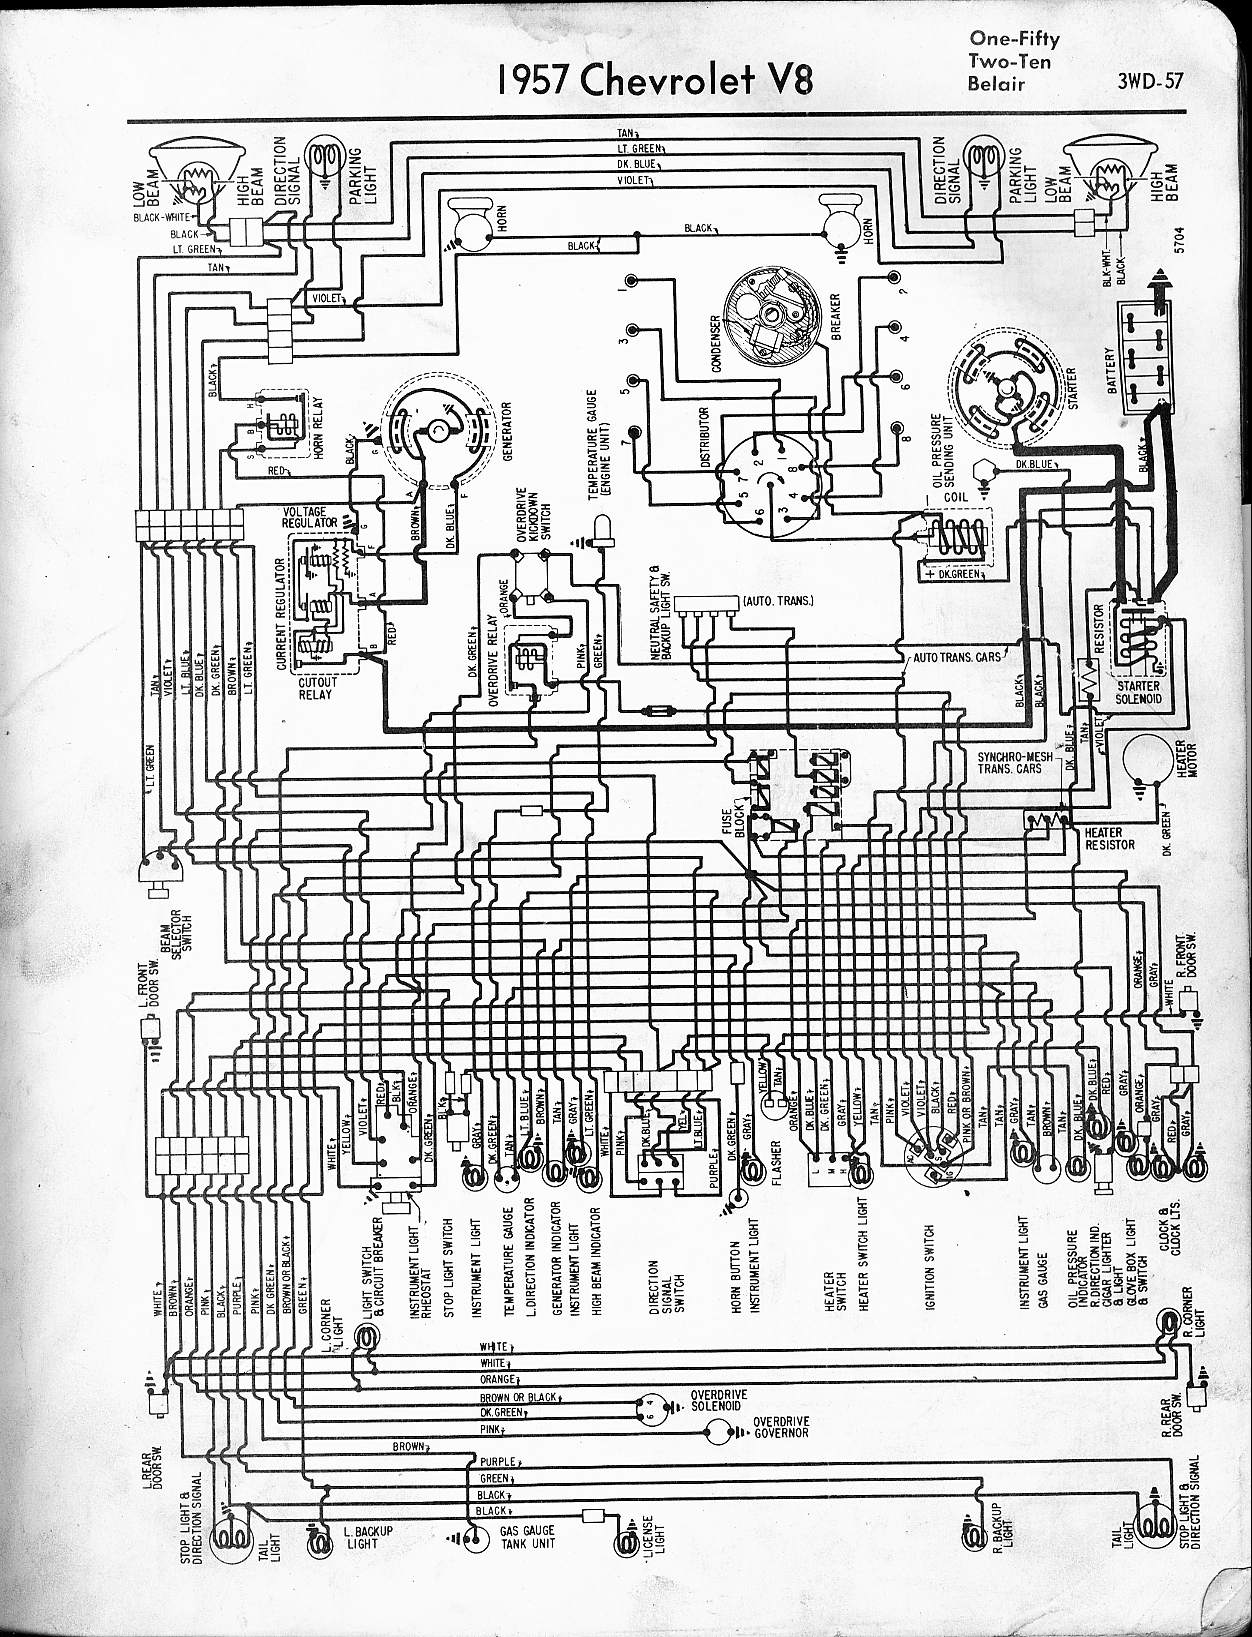 wiring diagram 57 chevy bel air opinions about wiring diagram u2022 rh  voterid co 57 chevy wiring diagram 57 chevy alternator wiring diagram